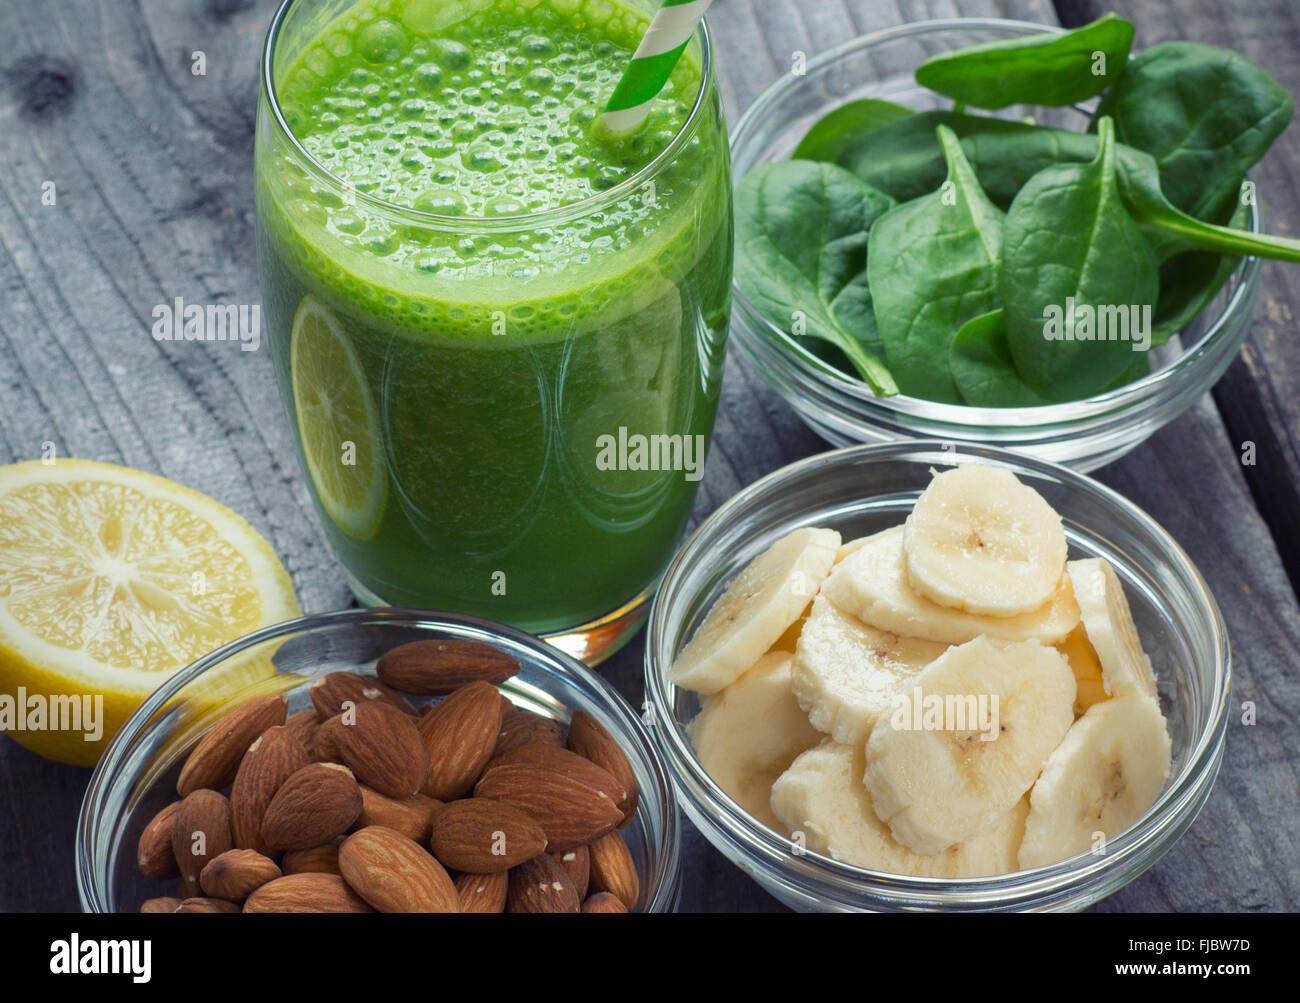 Green fresh healthy smoothie with fruits and vegetables Stock Photo